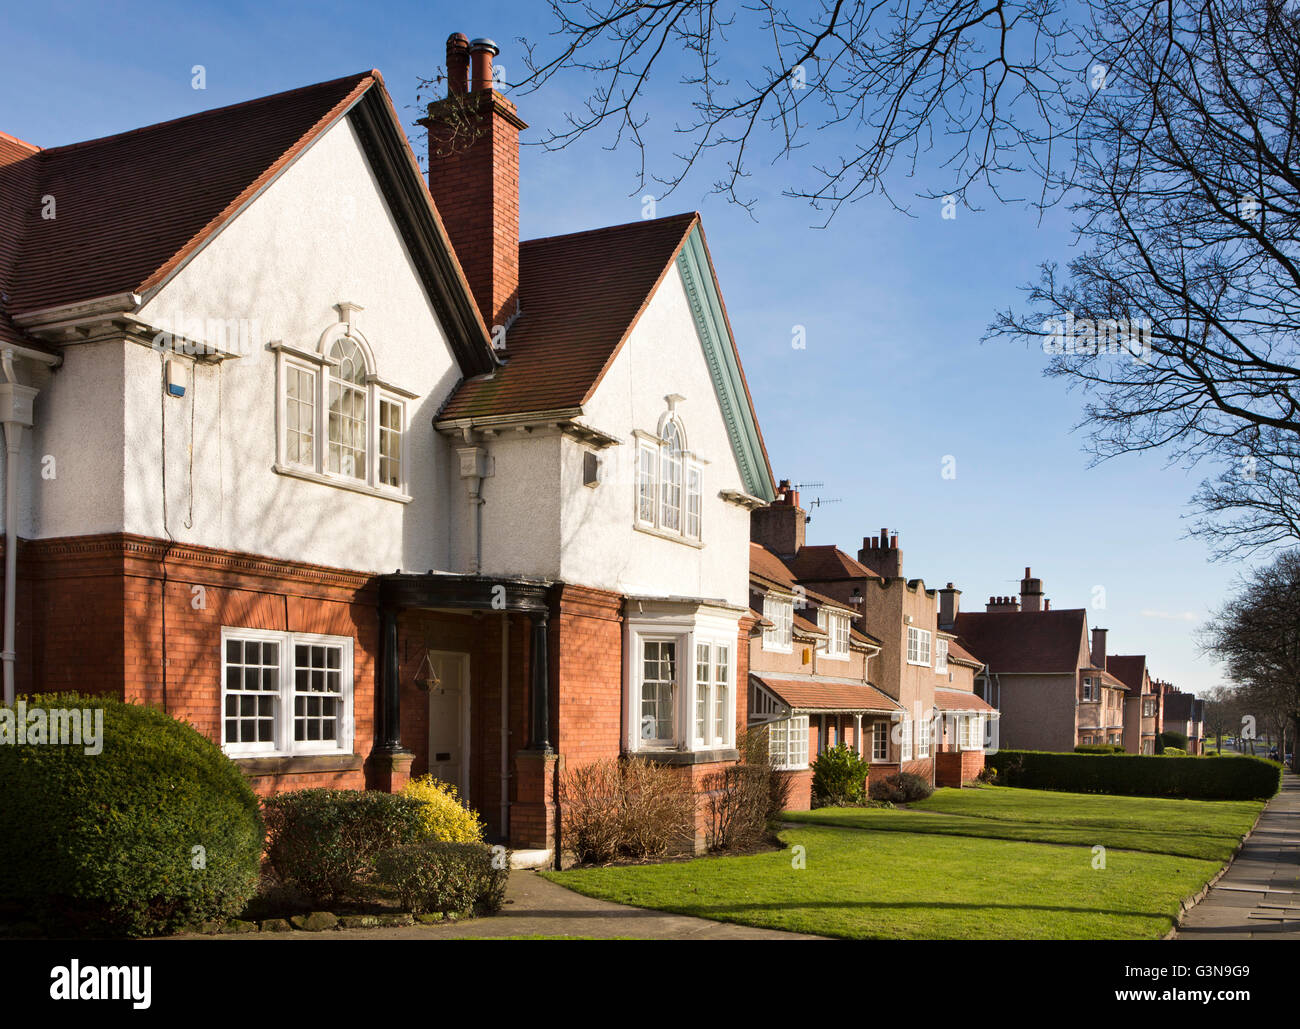 Uk England Wirrall Port Sunlight Pool Bank Arts And Crafts Style Stock Photo Alamy